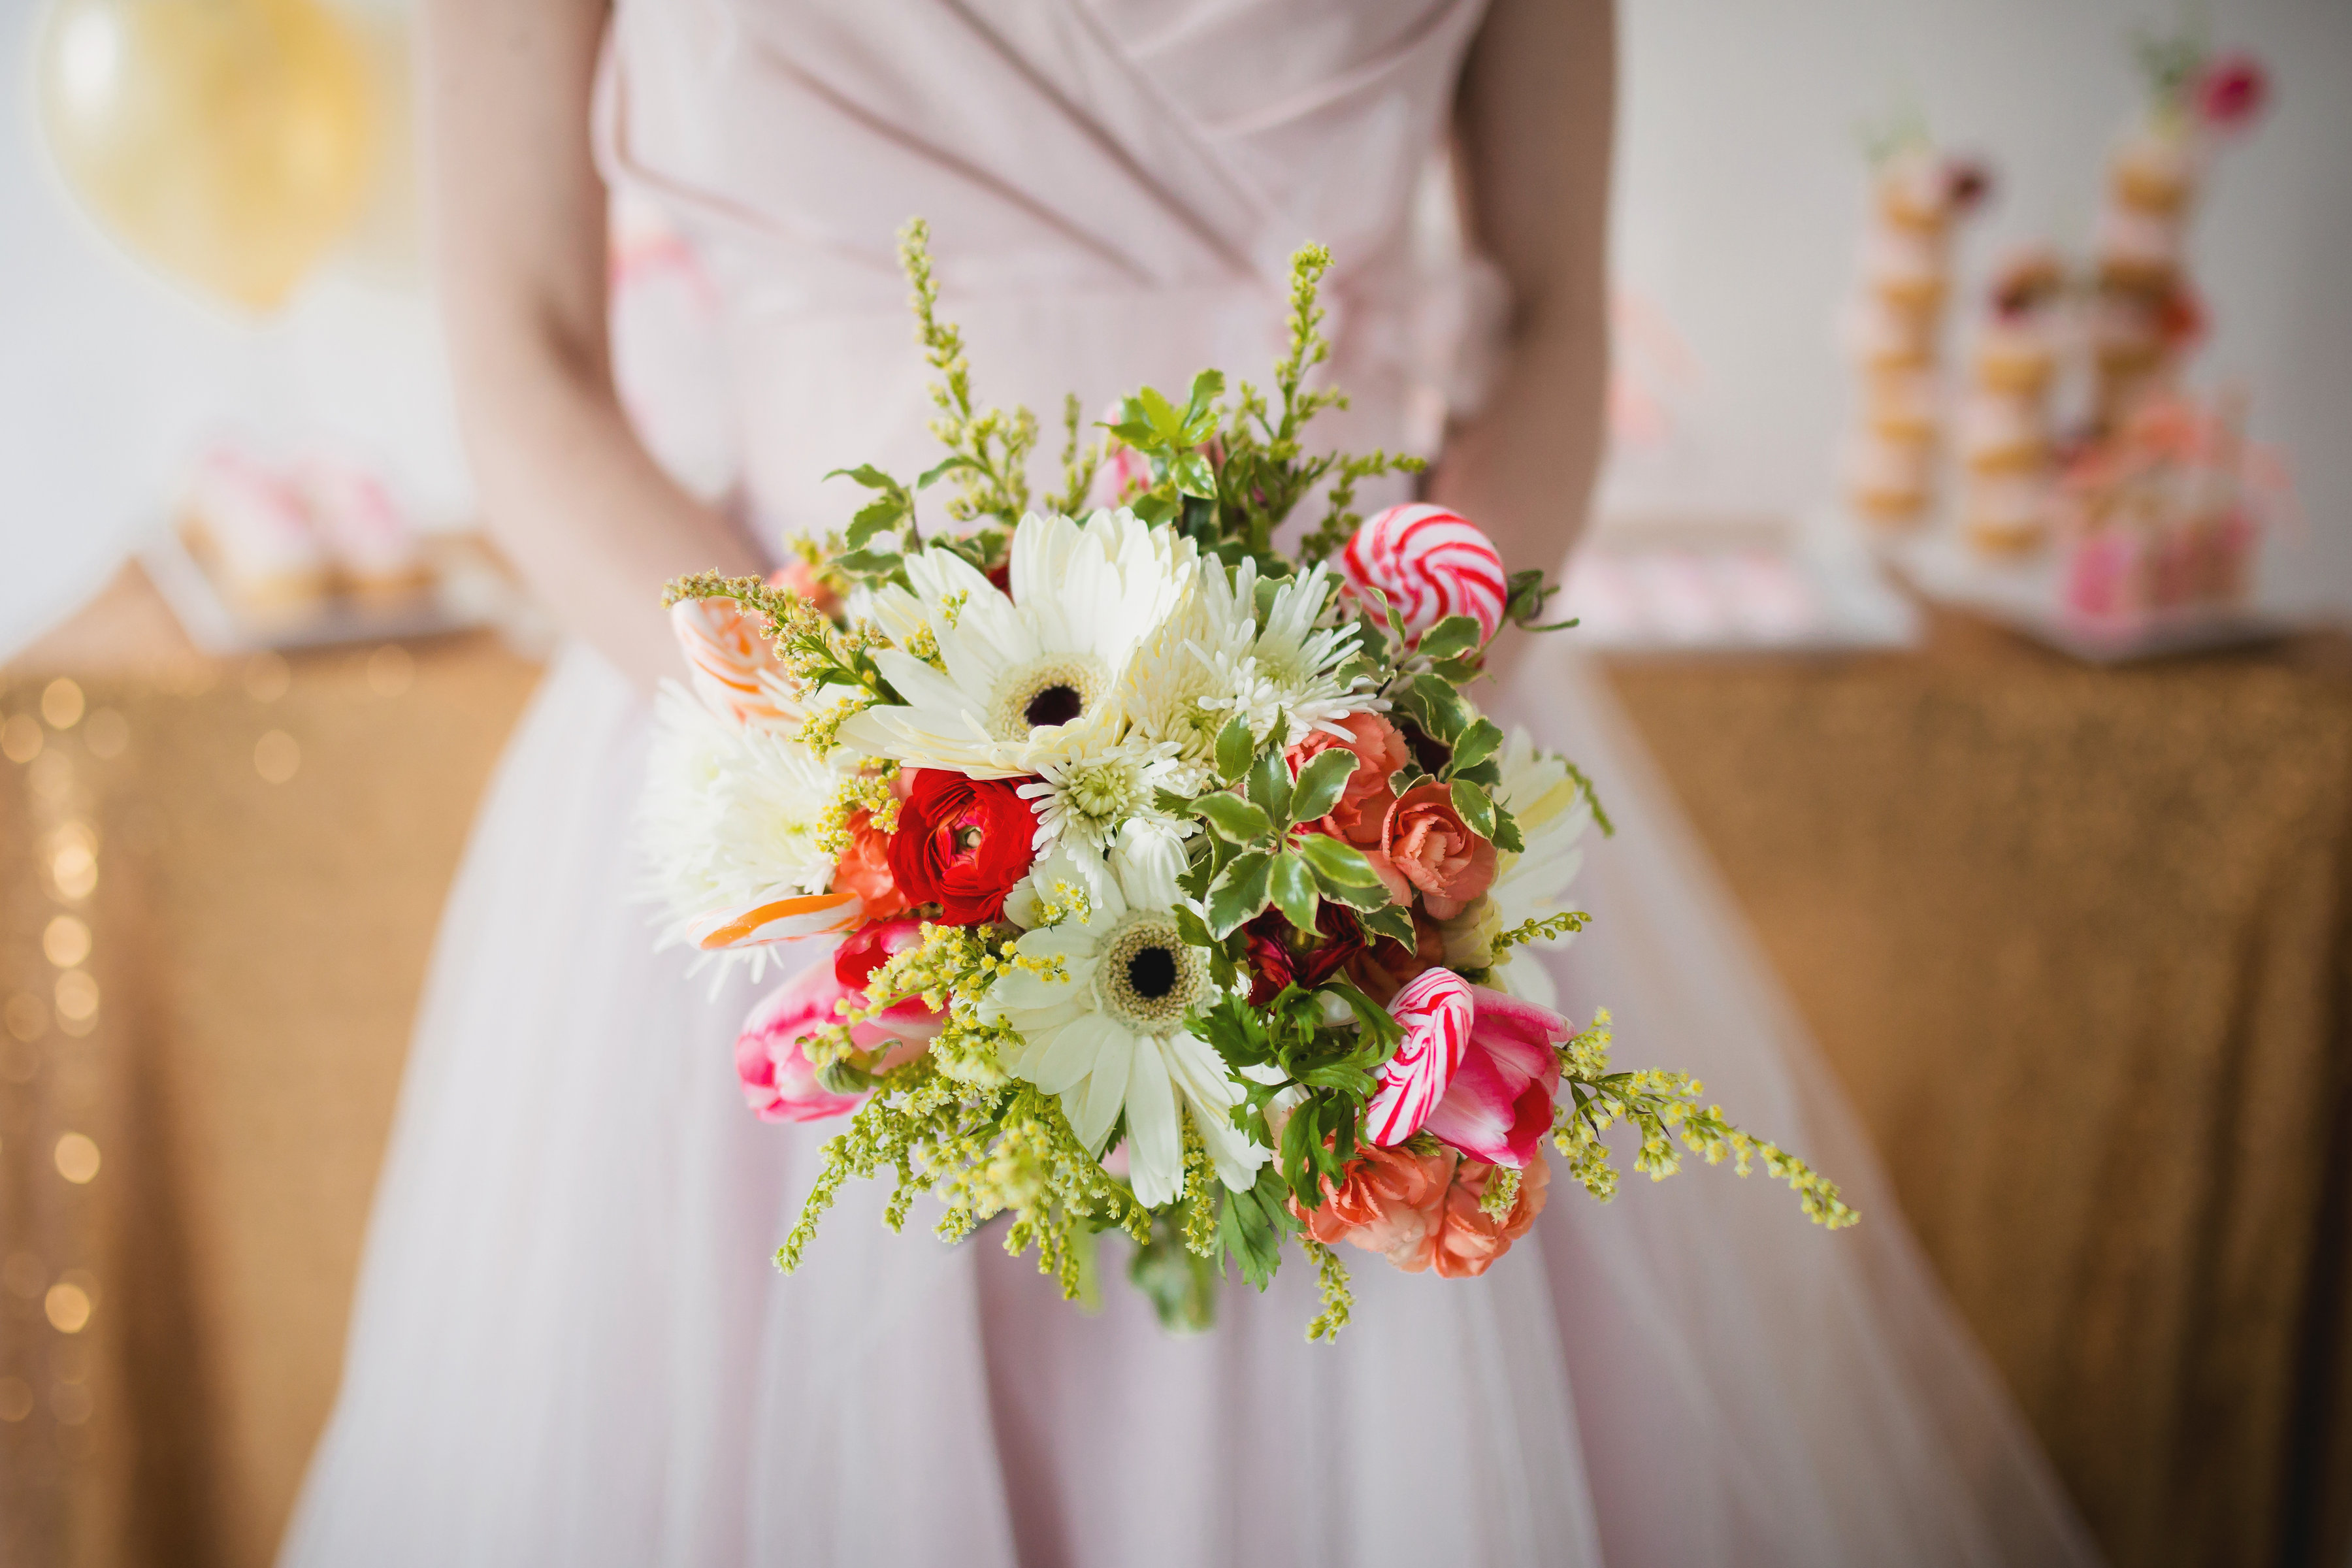 Bridal bouquet with white gerbera daisies and lollipop accents   designed by Natasha Price of Paper Peony and photo by Dolce Vita Photo Boutique